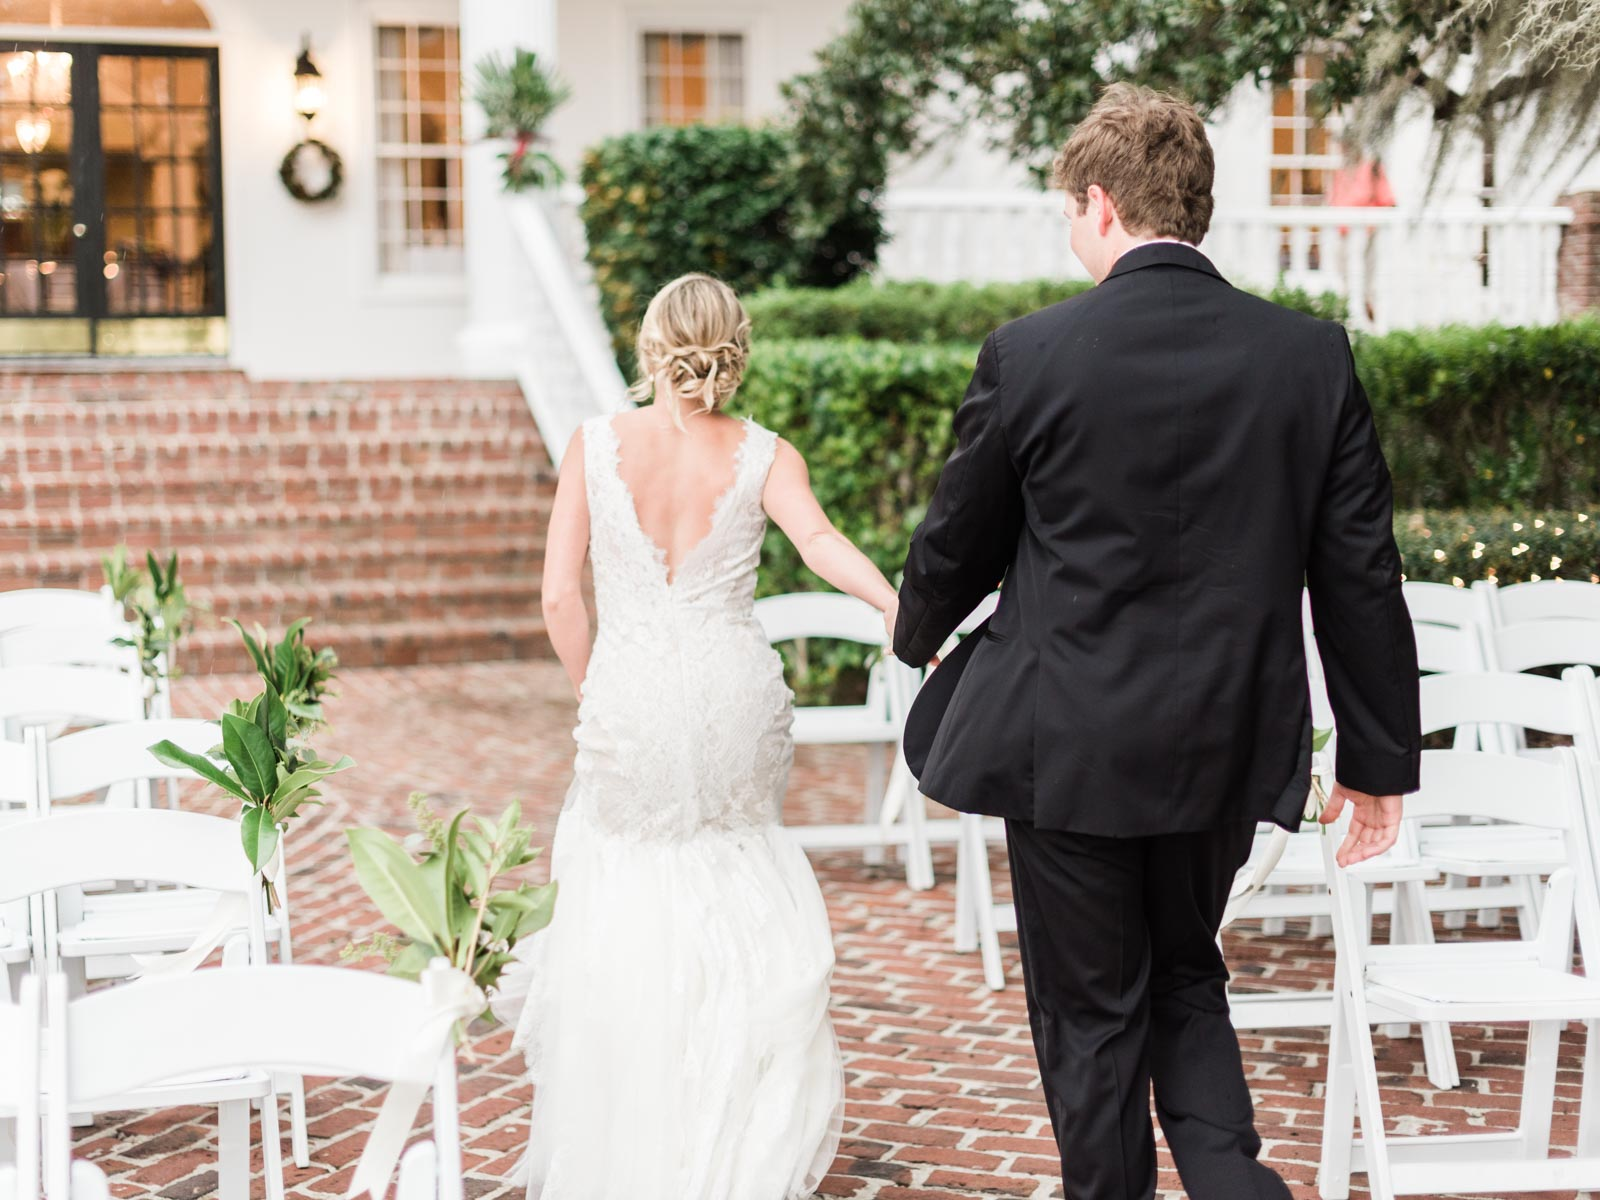 Wedding at Heritage Plantation in Pawley's Island_Markie Walden Photo-19.jpg